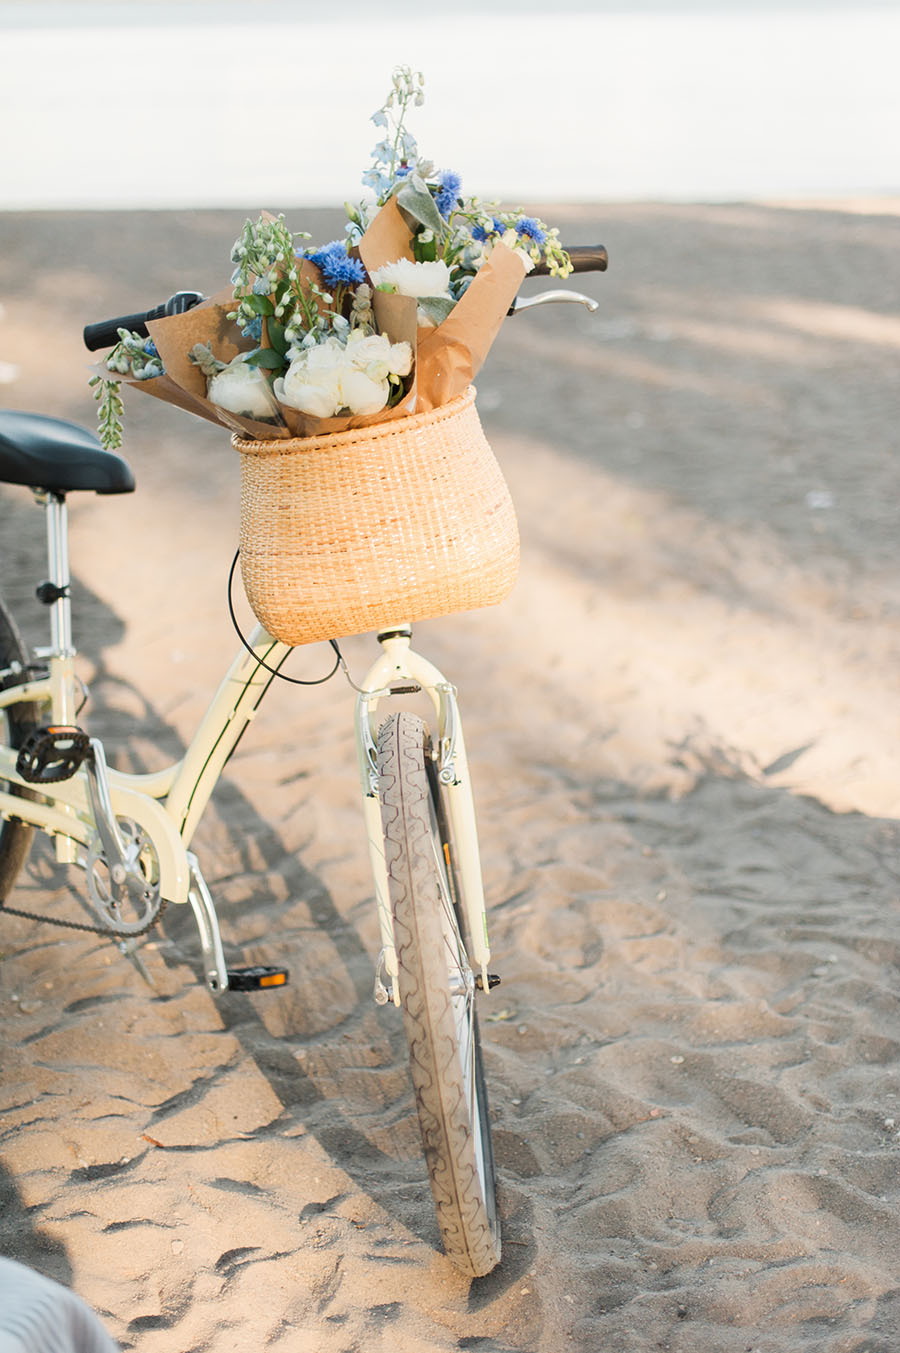 vintage-bicycle-with-flowers-in-basket